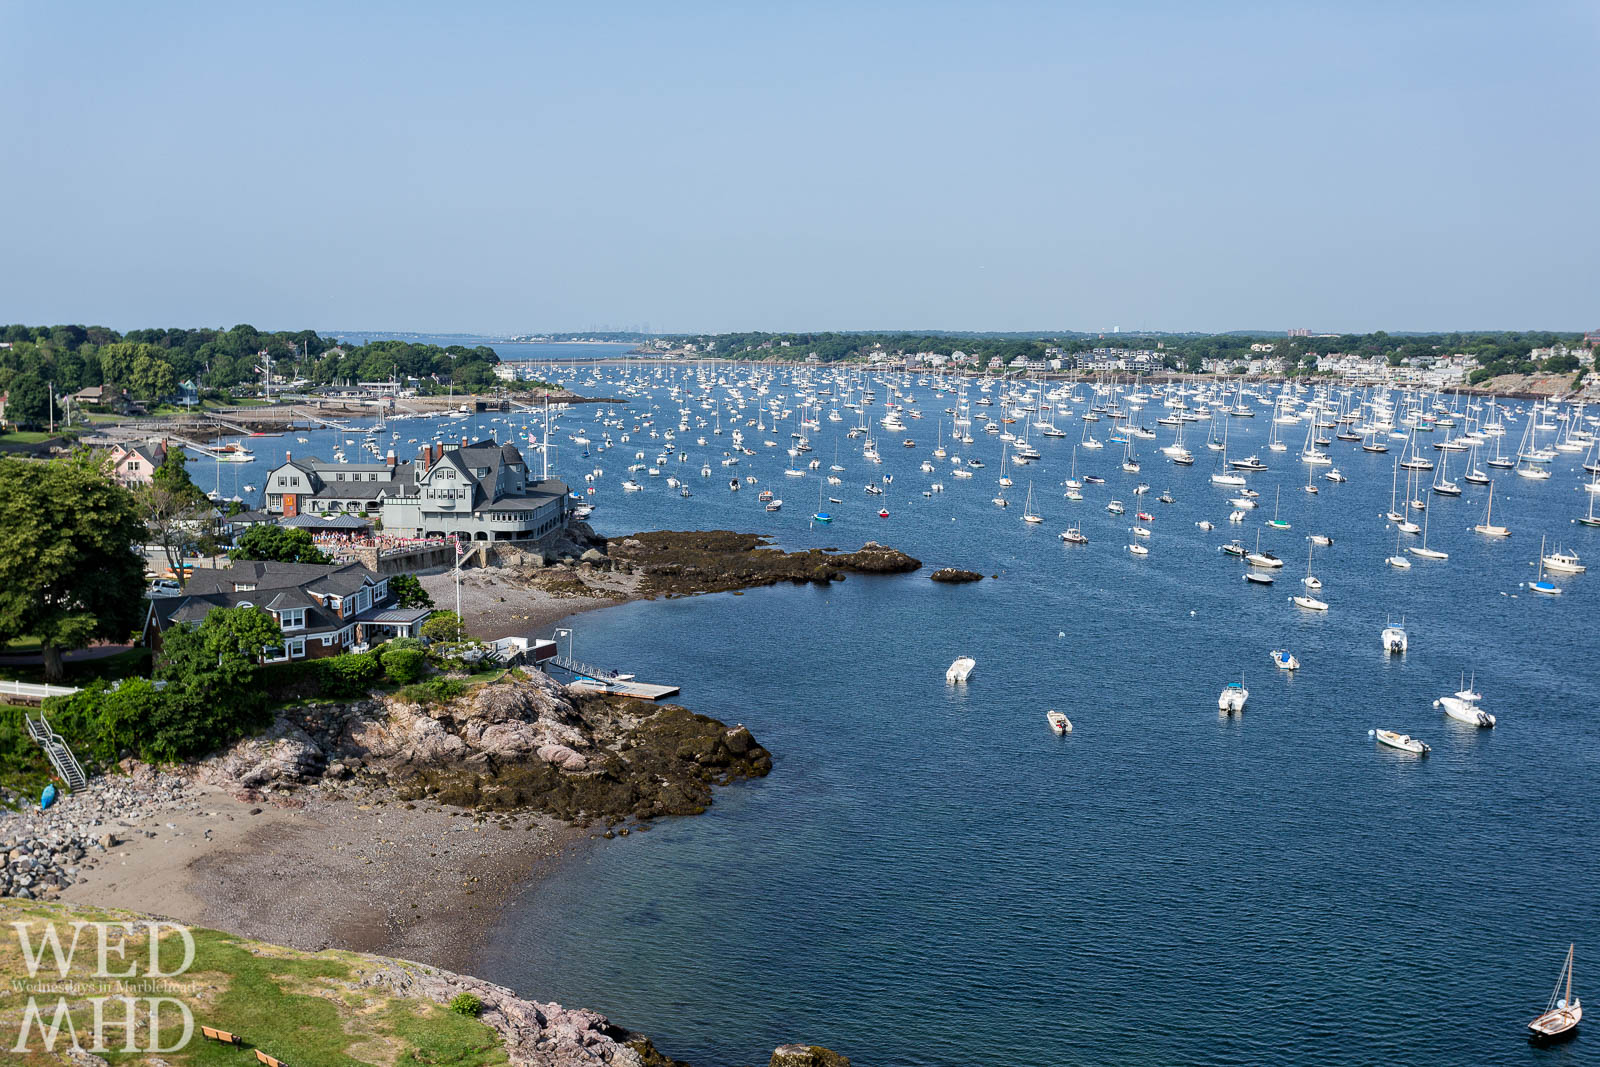 Corinthian Yacht Club and Marblehead Harbor